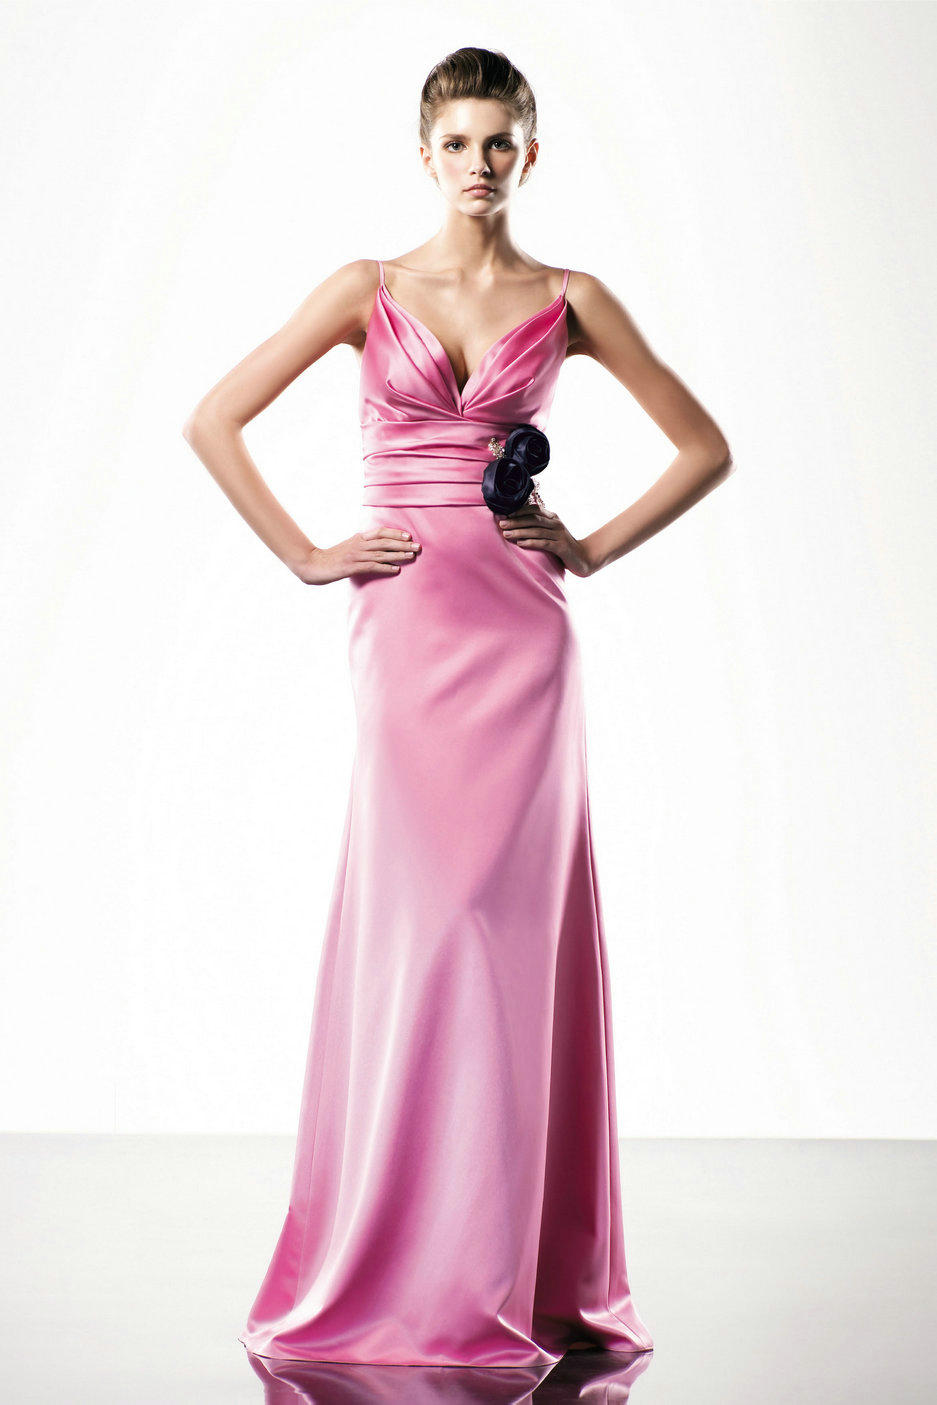 Free Shipping on Many Items! Shop from the world's largest selection and best deals for Awear Dresses for Women. Shop with confidence on eBay!